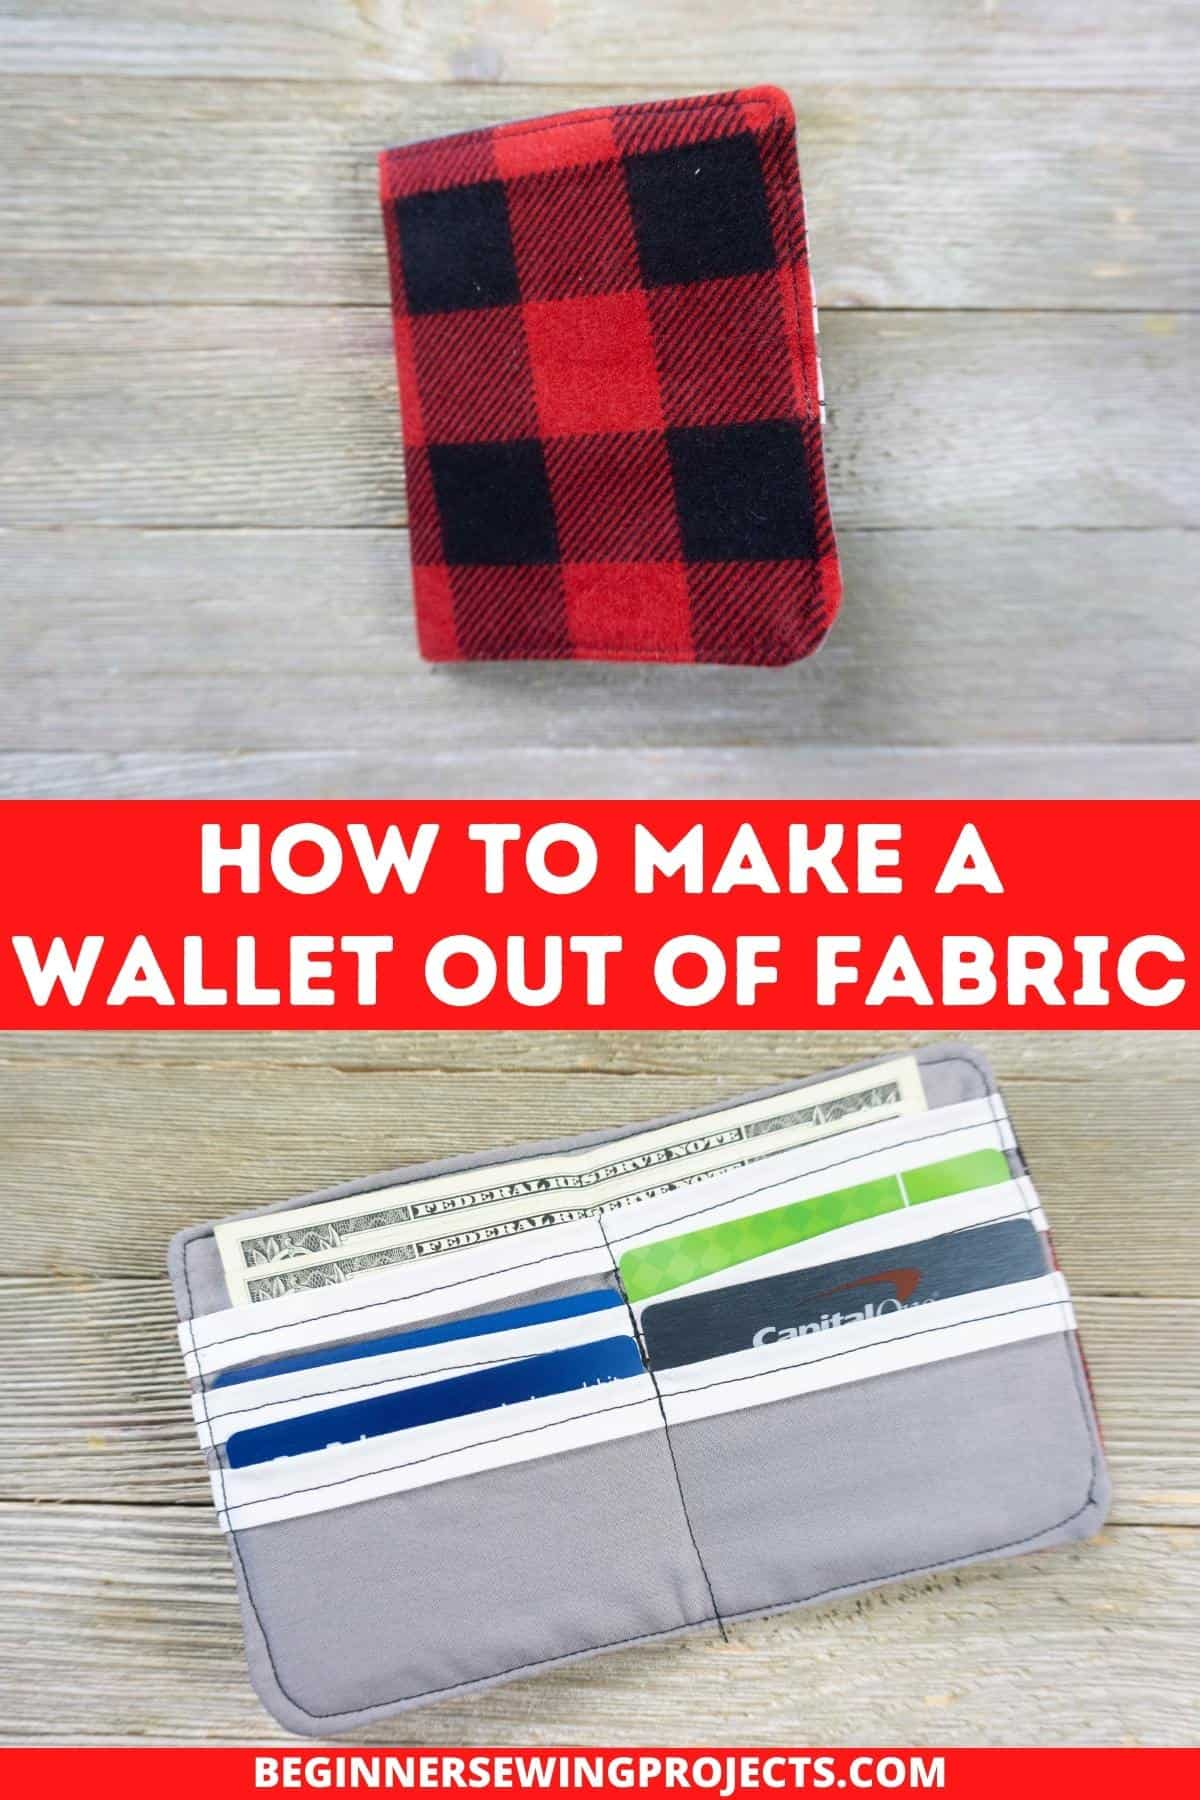 How To Make A Wallet Out Of Fabric!